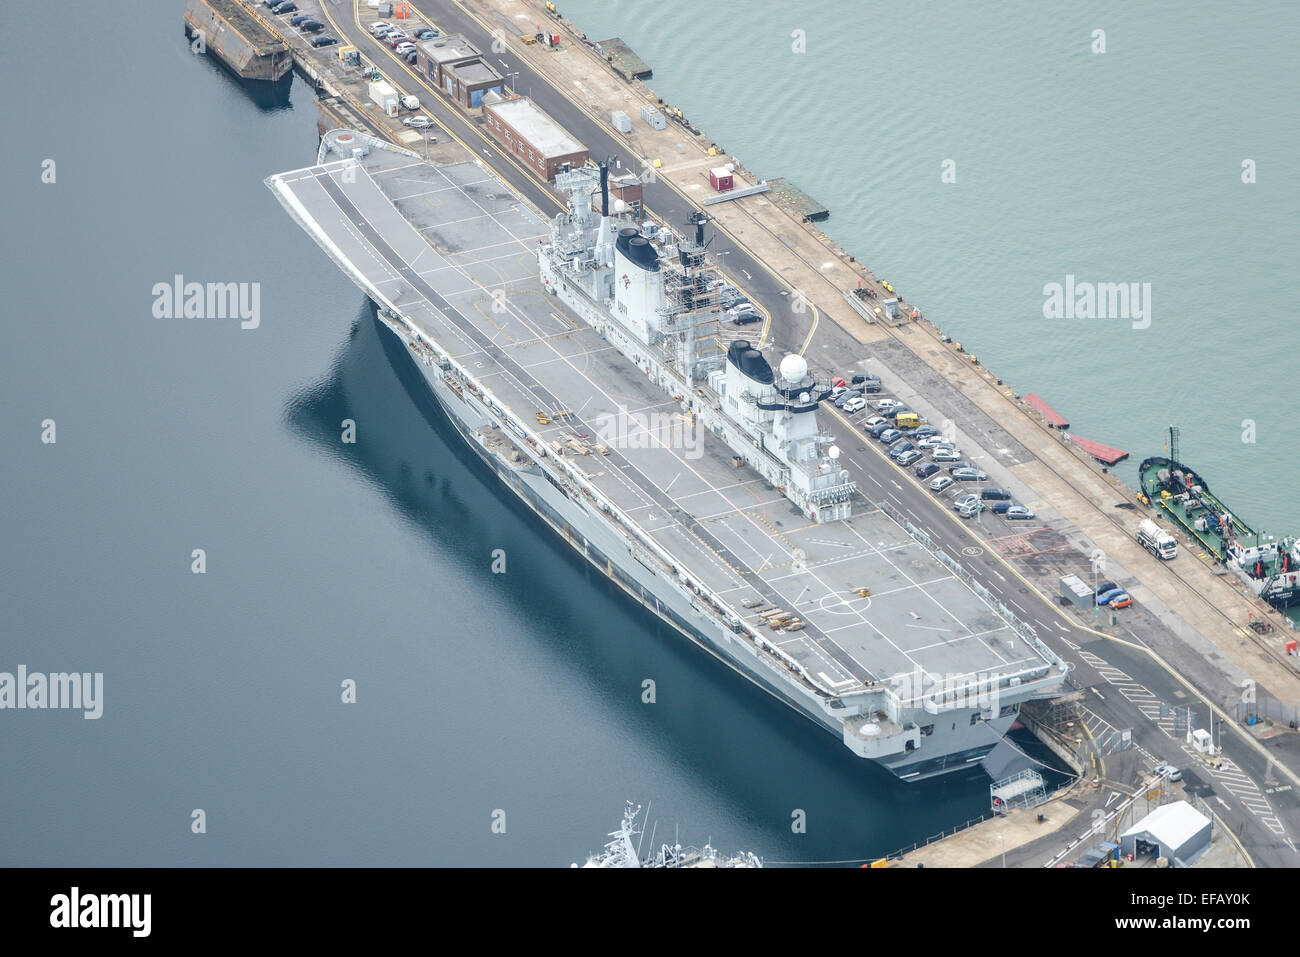 An aerial view of HMS Illustrious, a decommissioned Invincible Class Aircraft Carrier of the Royal Navy berthed - Stock Image